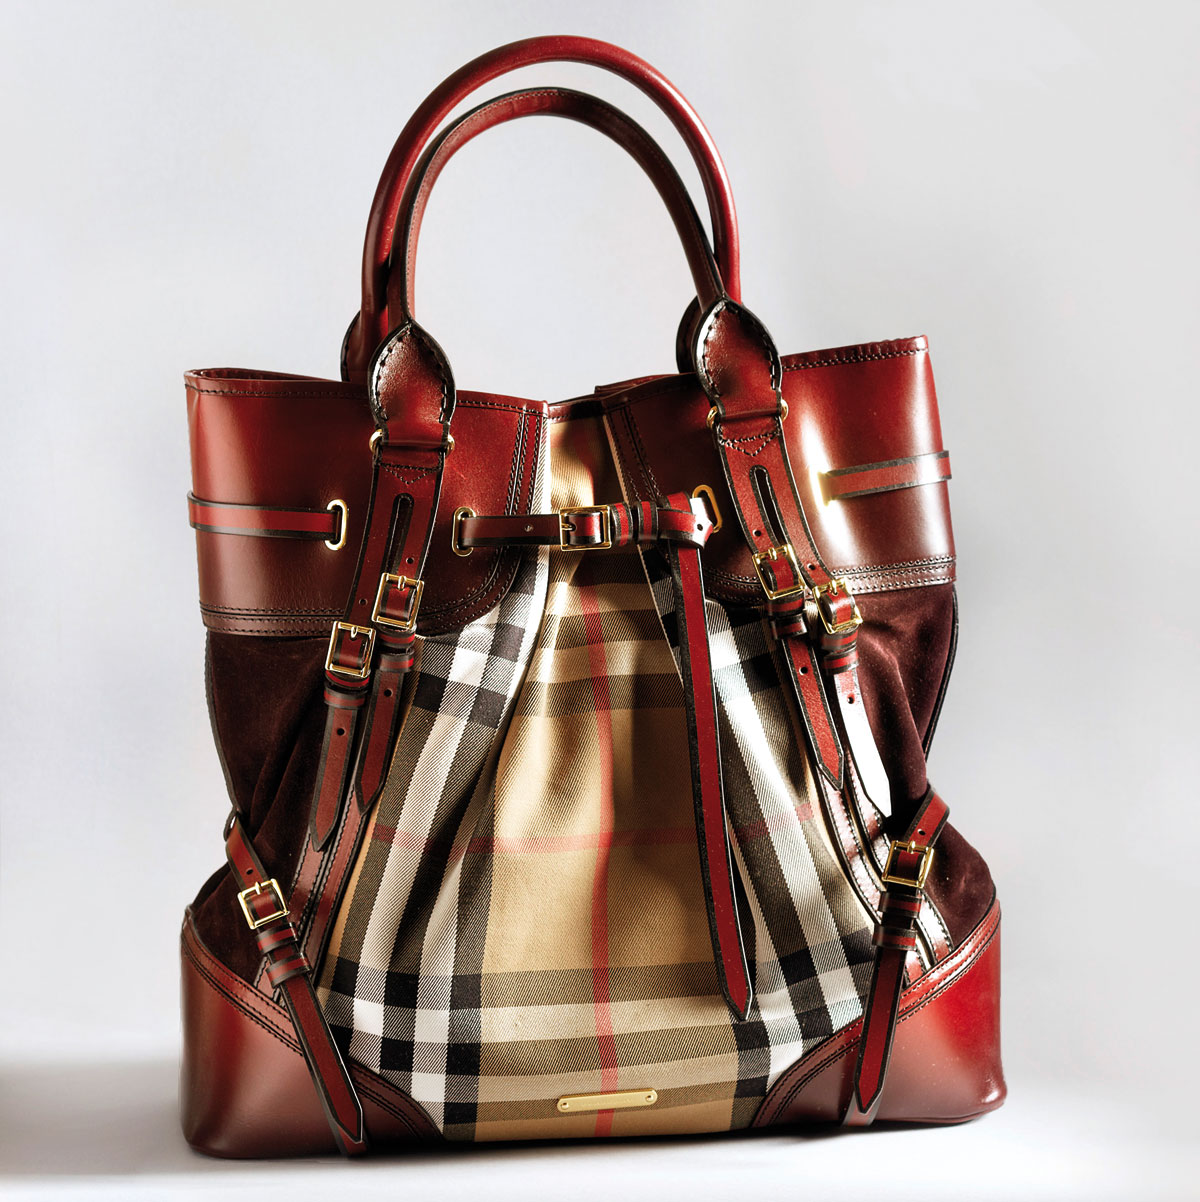 m09-sac-bag-burberry